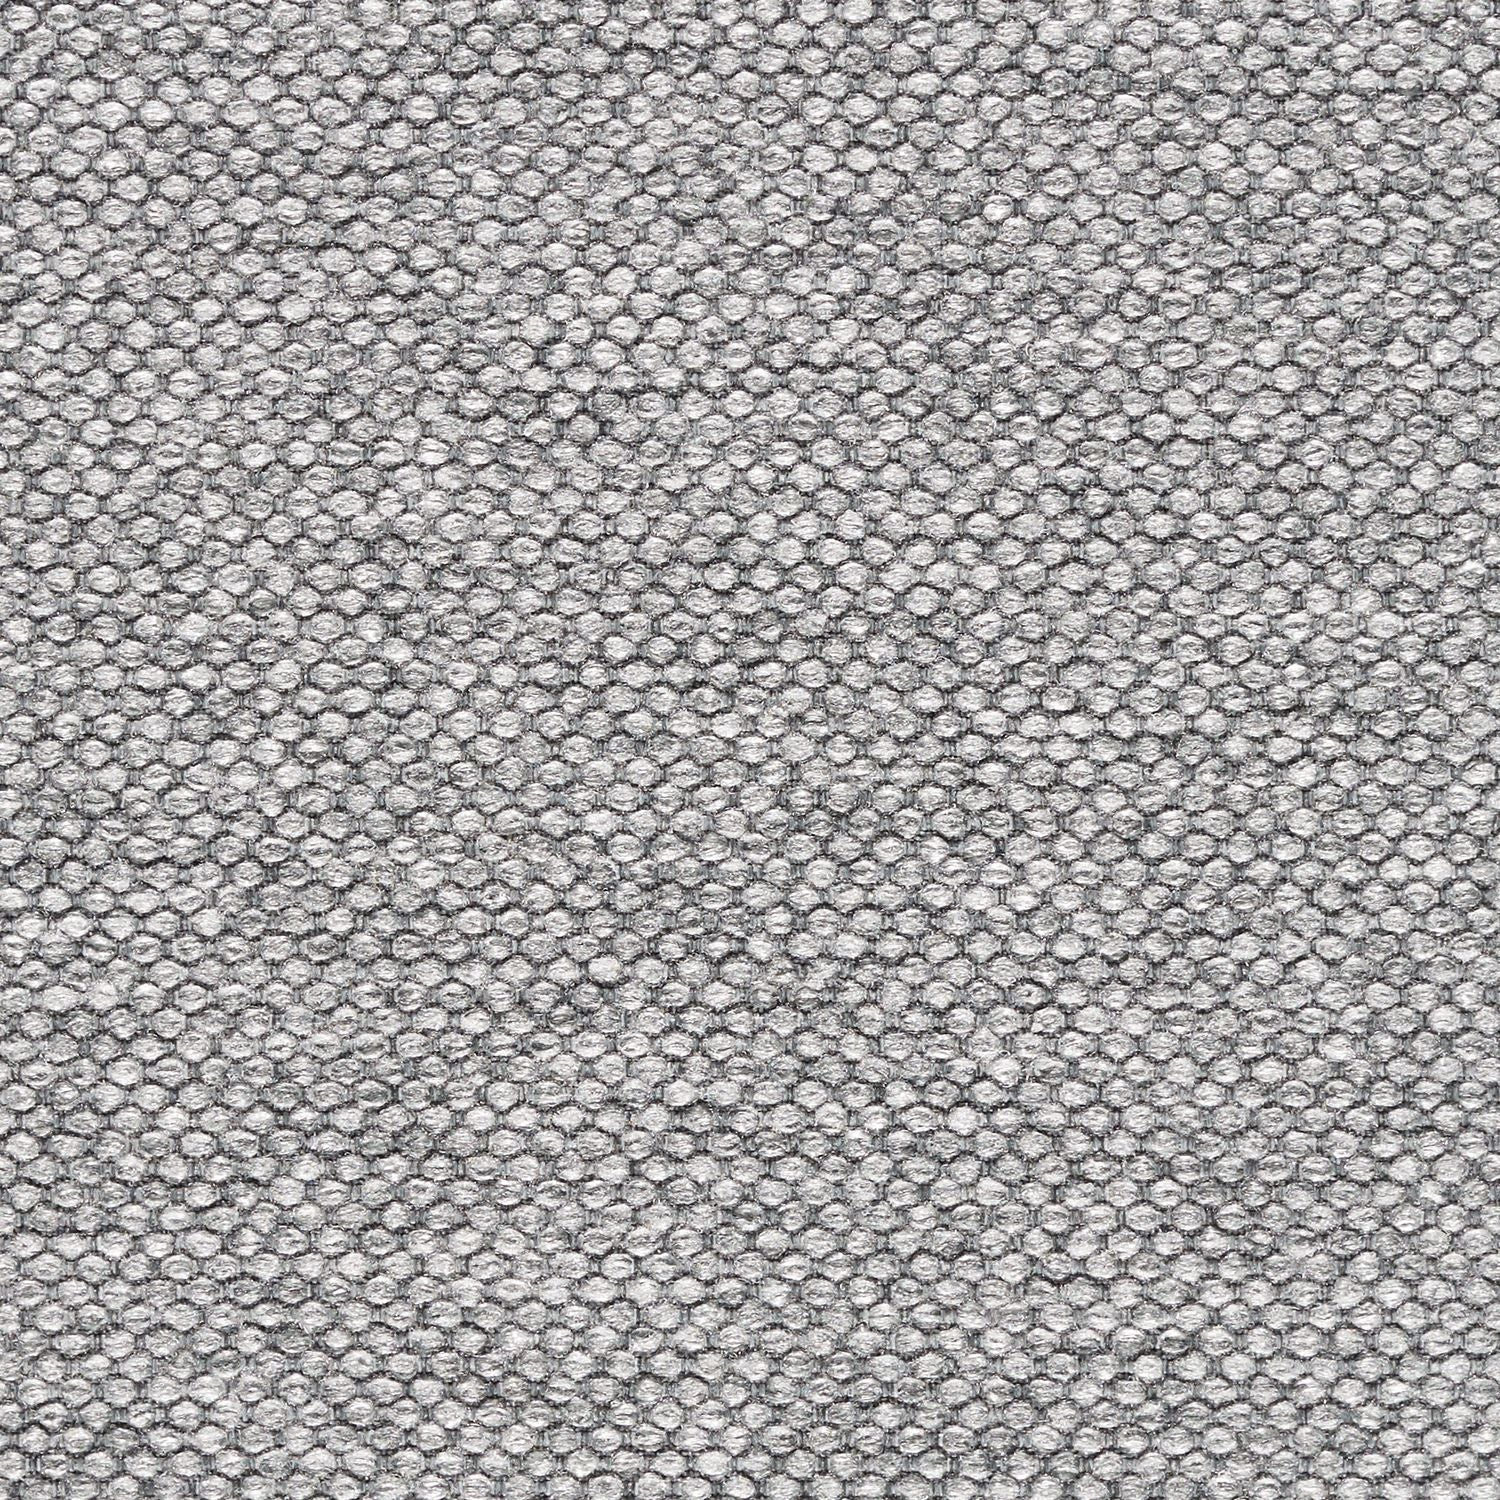 Digi Tweed - Crag Tweed - 4058 - 07